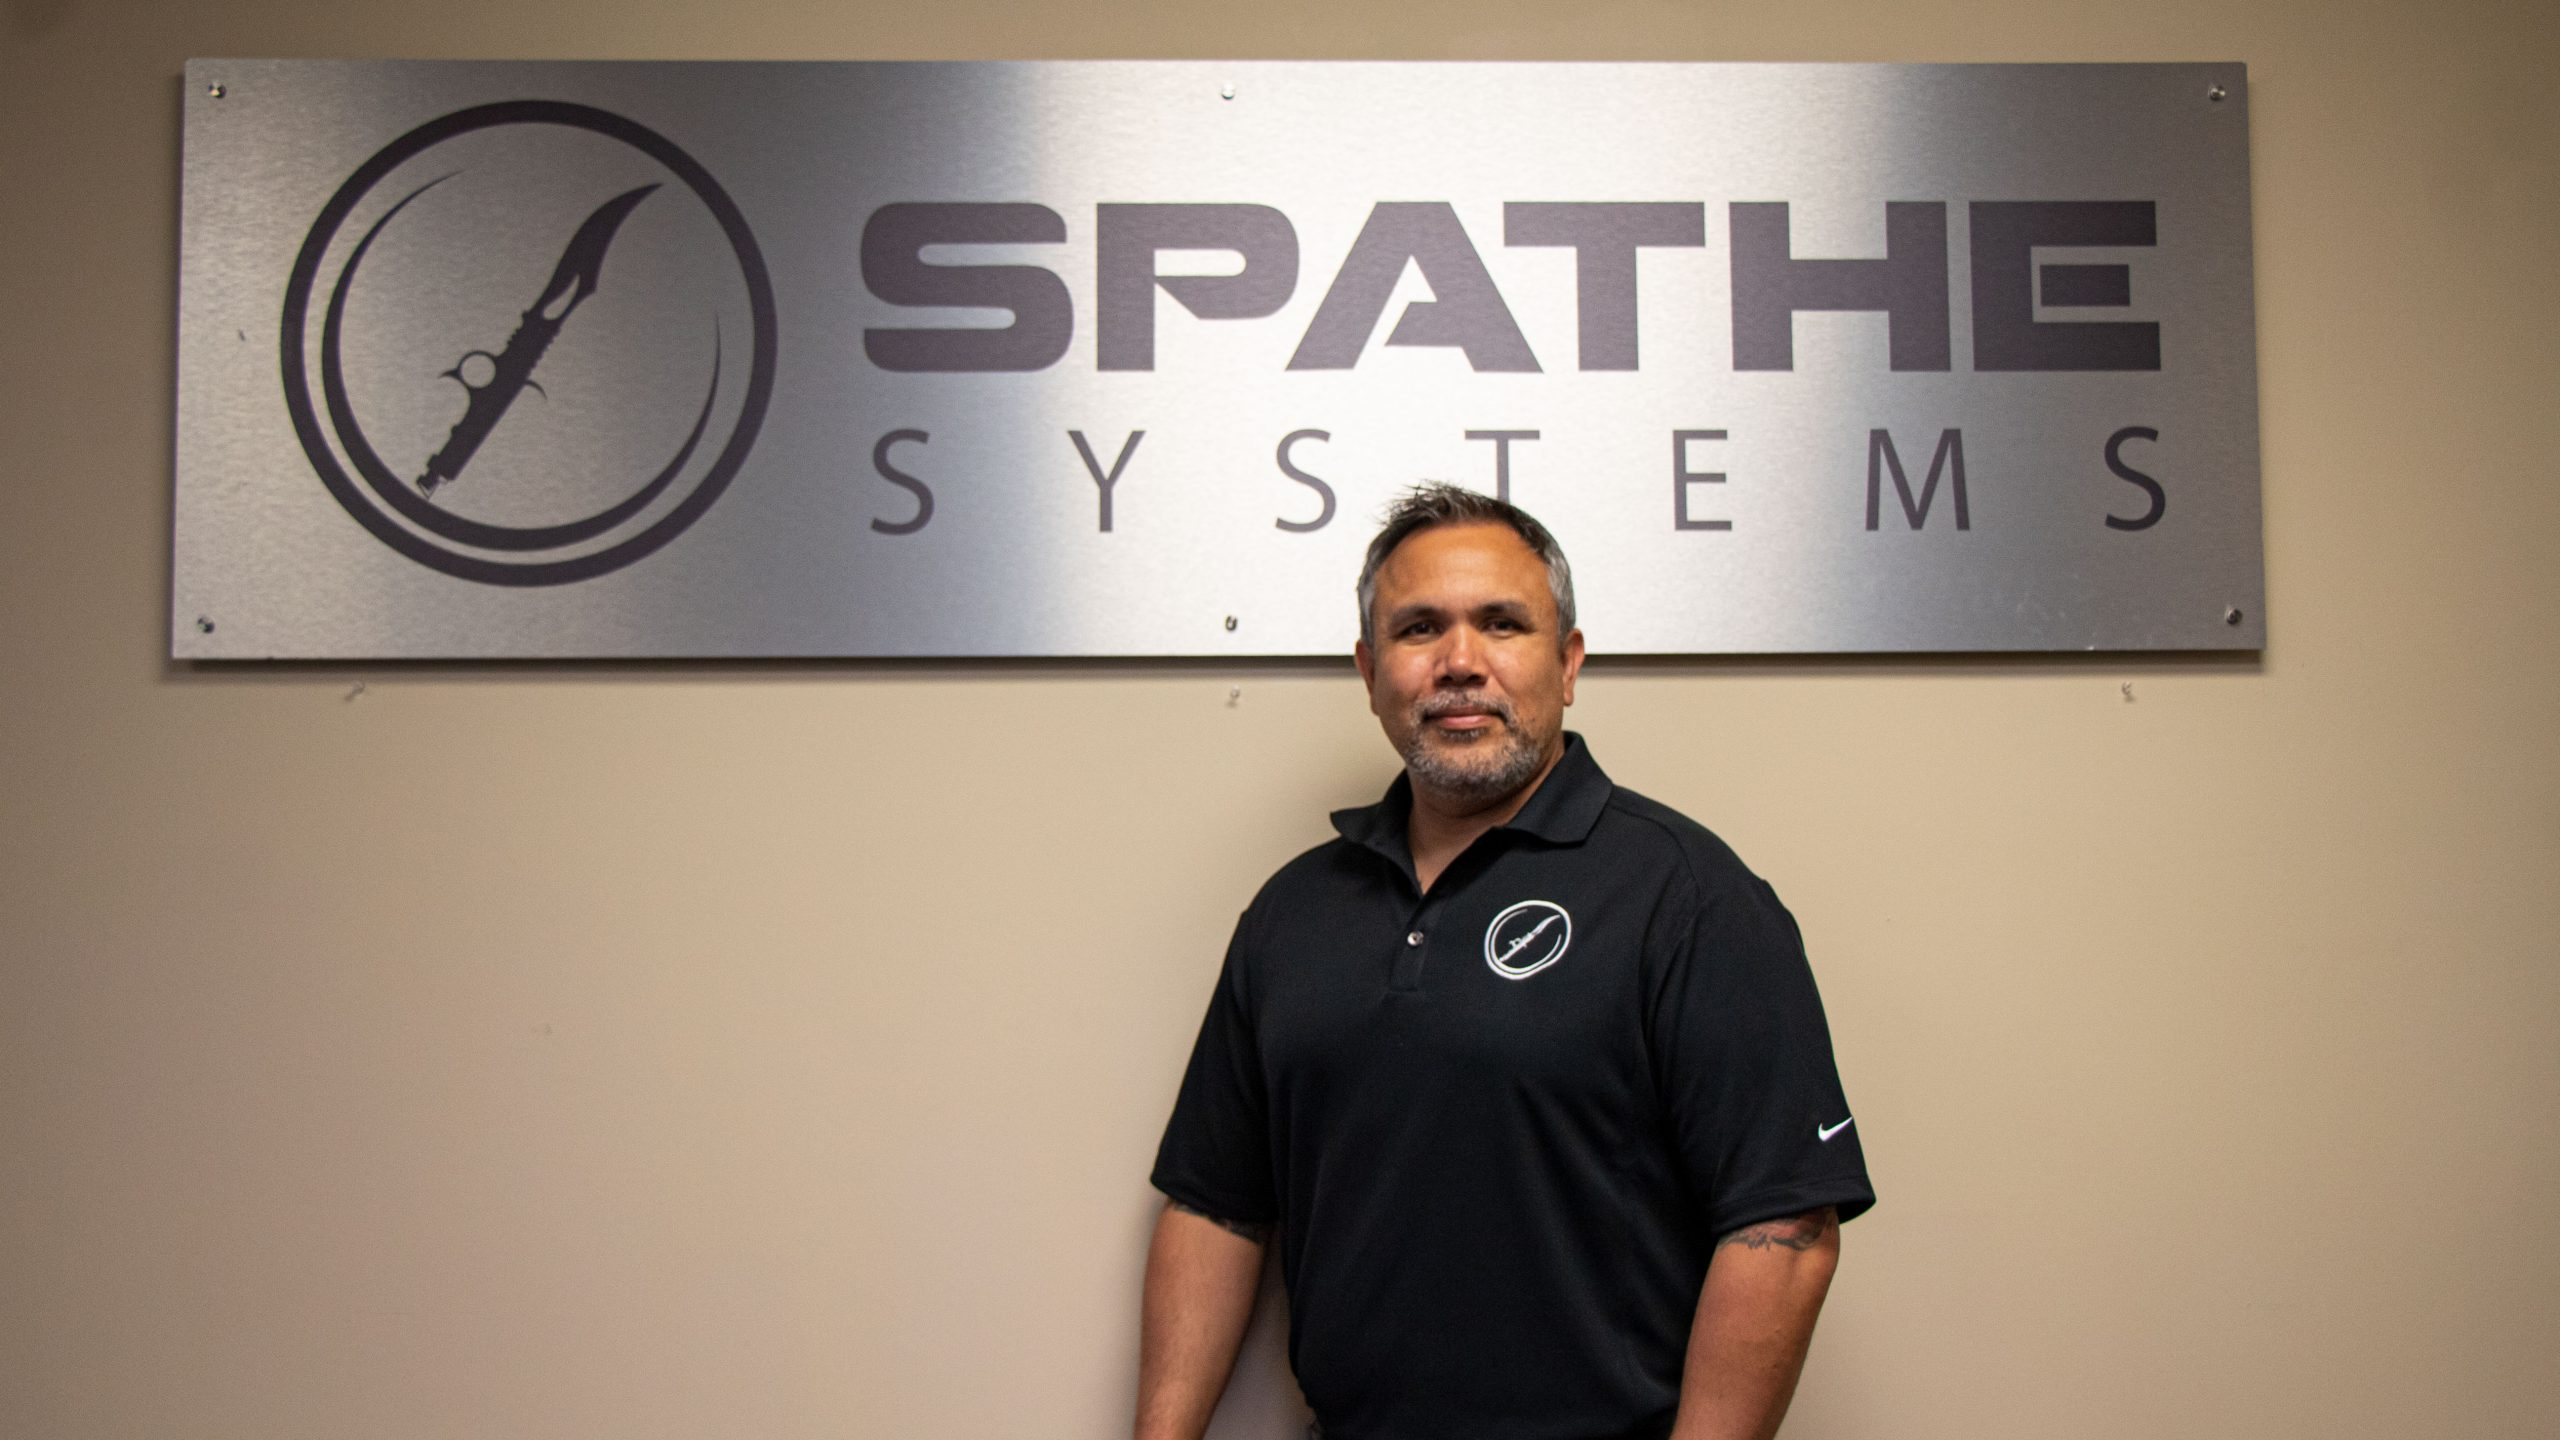 Warrior Care Intern SGM Dave Nolan reflects on his time with Spathe Systems